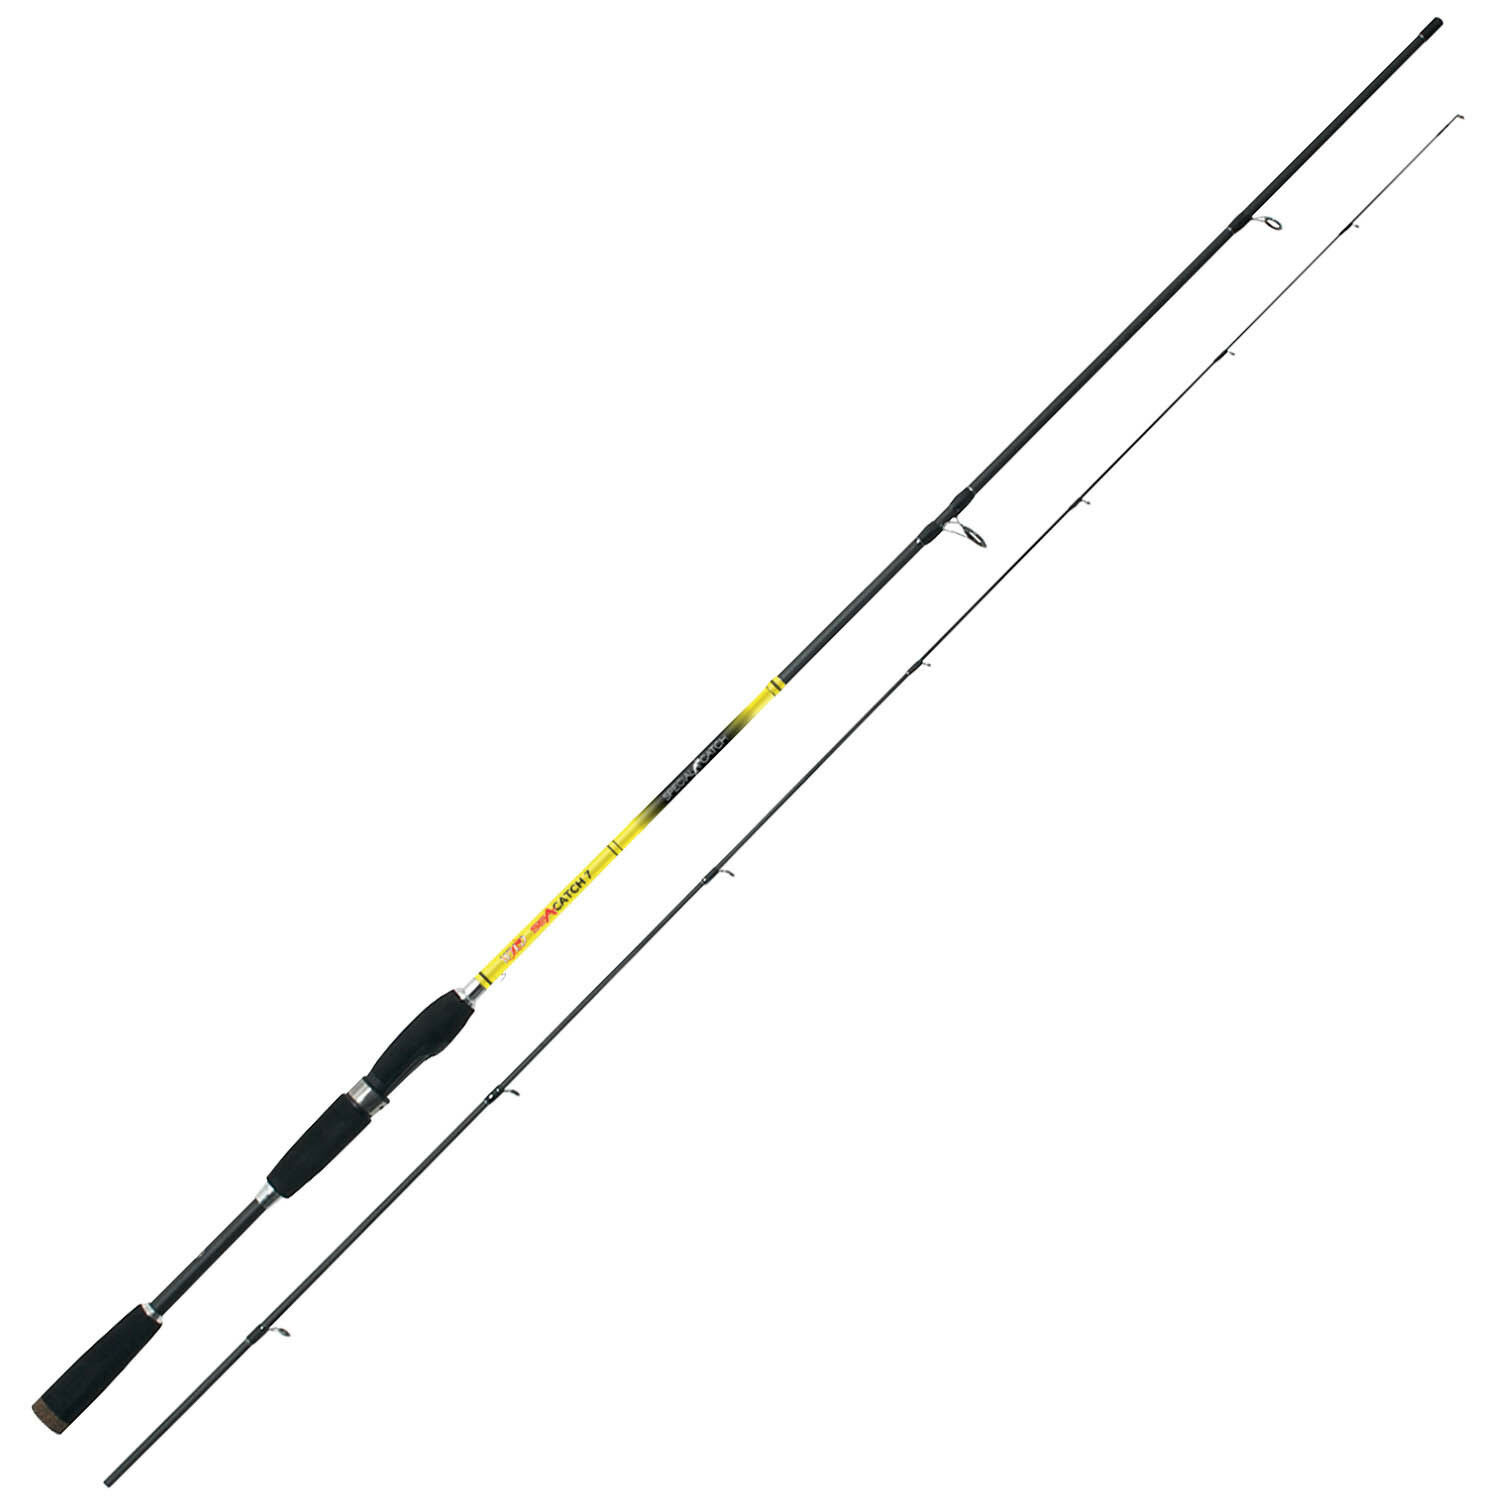 D0900236 Canna Pesca Spinning Falcon Wild Sea Catch 2,13 m 3-15 Gr  CAS